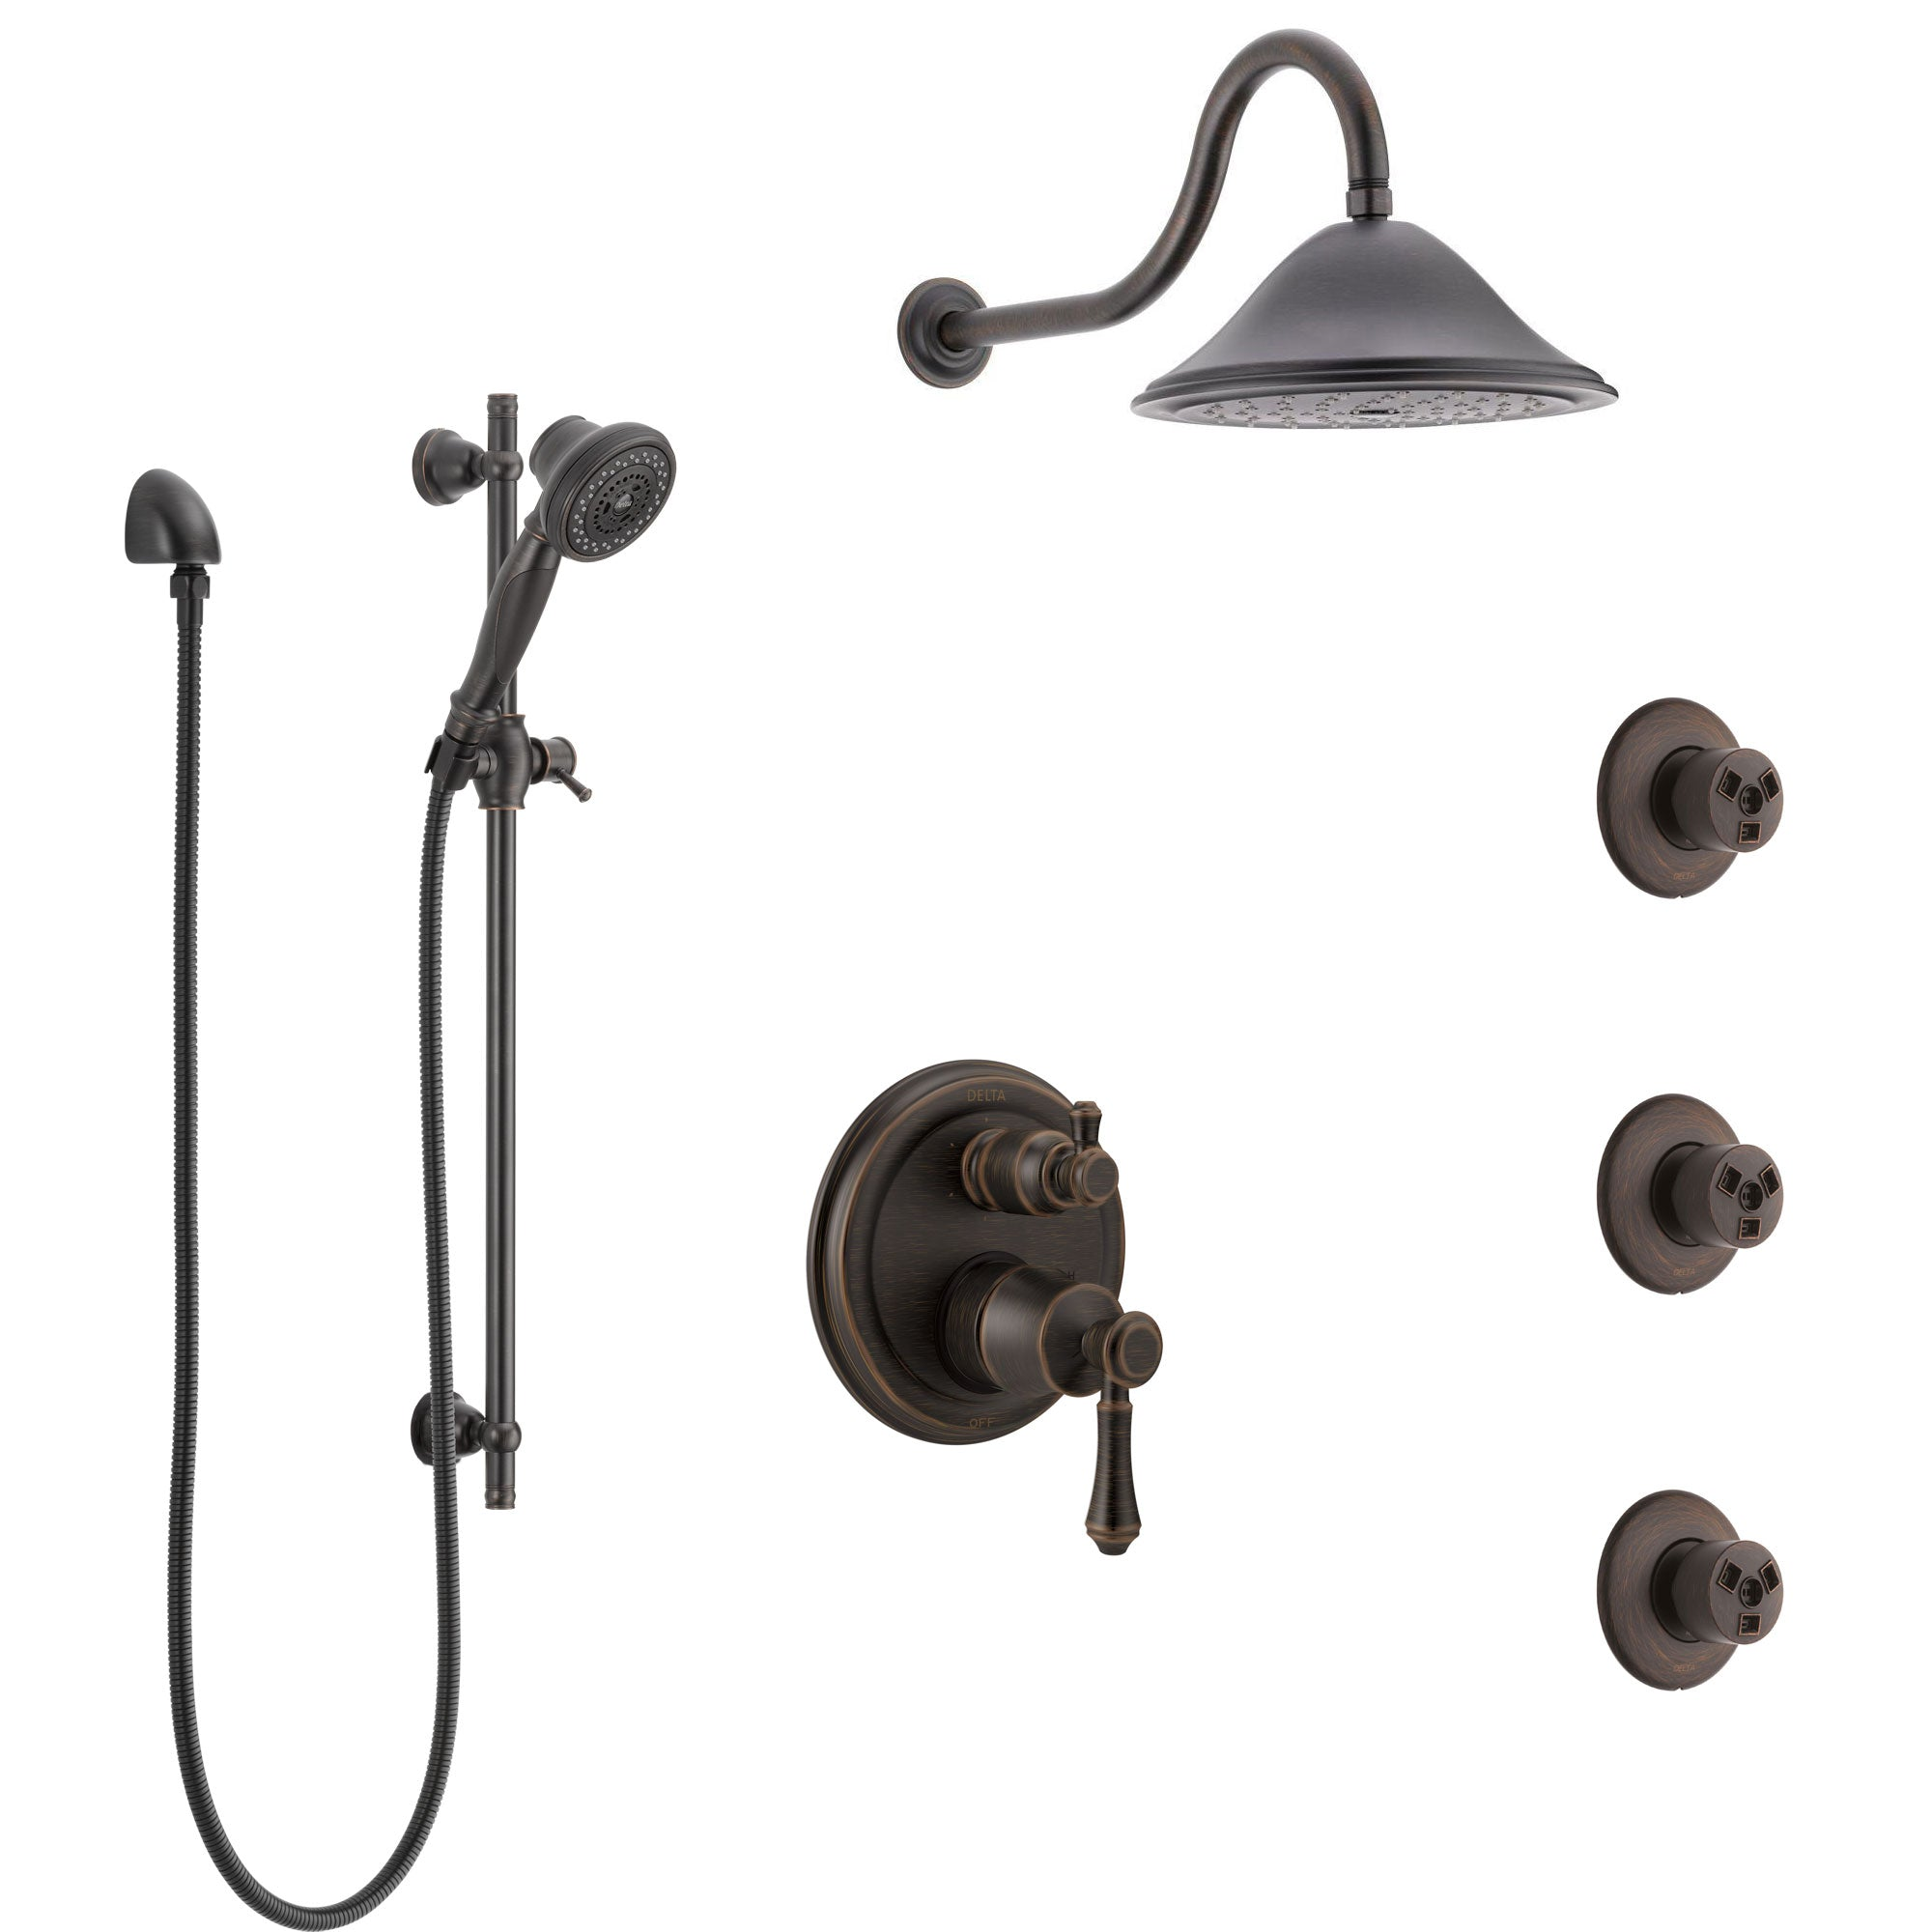 Delta Cassidy Venetian Bronze Shower System with Control Handle, Integrated 6-Setting Diverter, Showerhead, 3 Body Sprays, and Hand Shower SS24997RB1